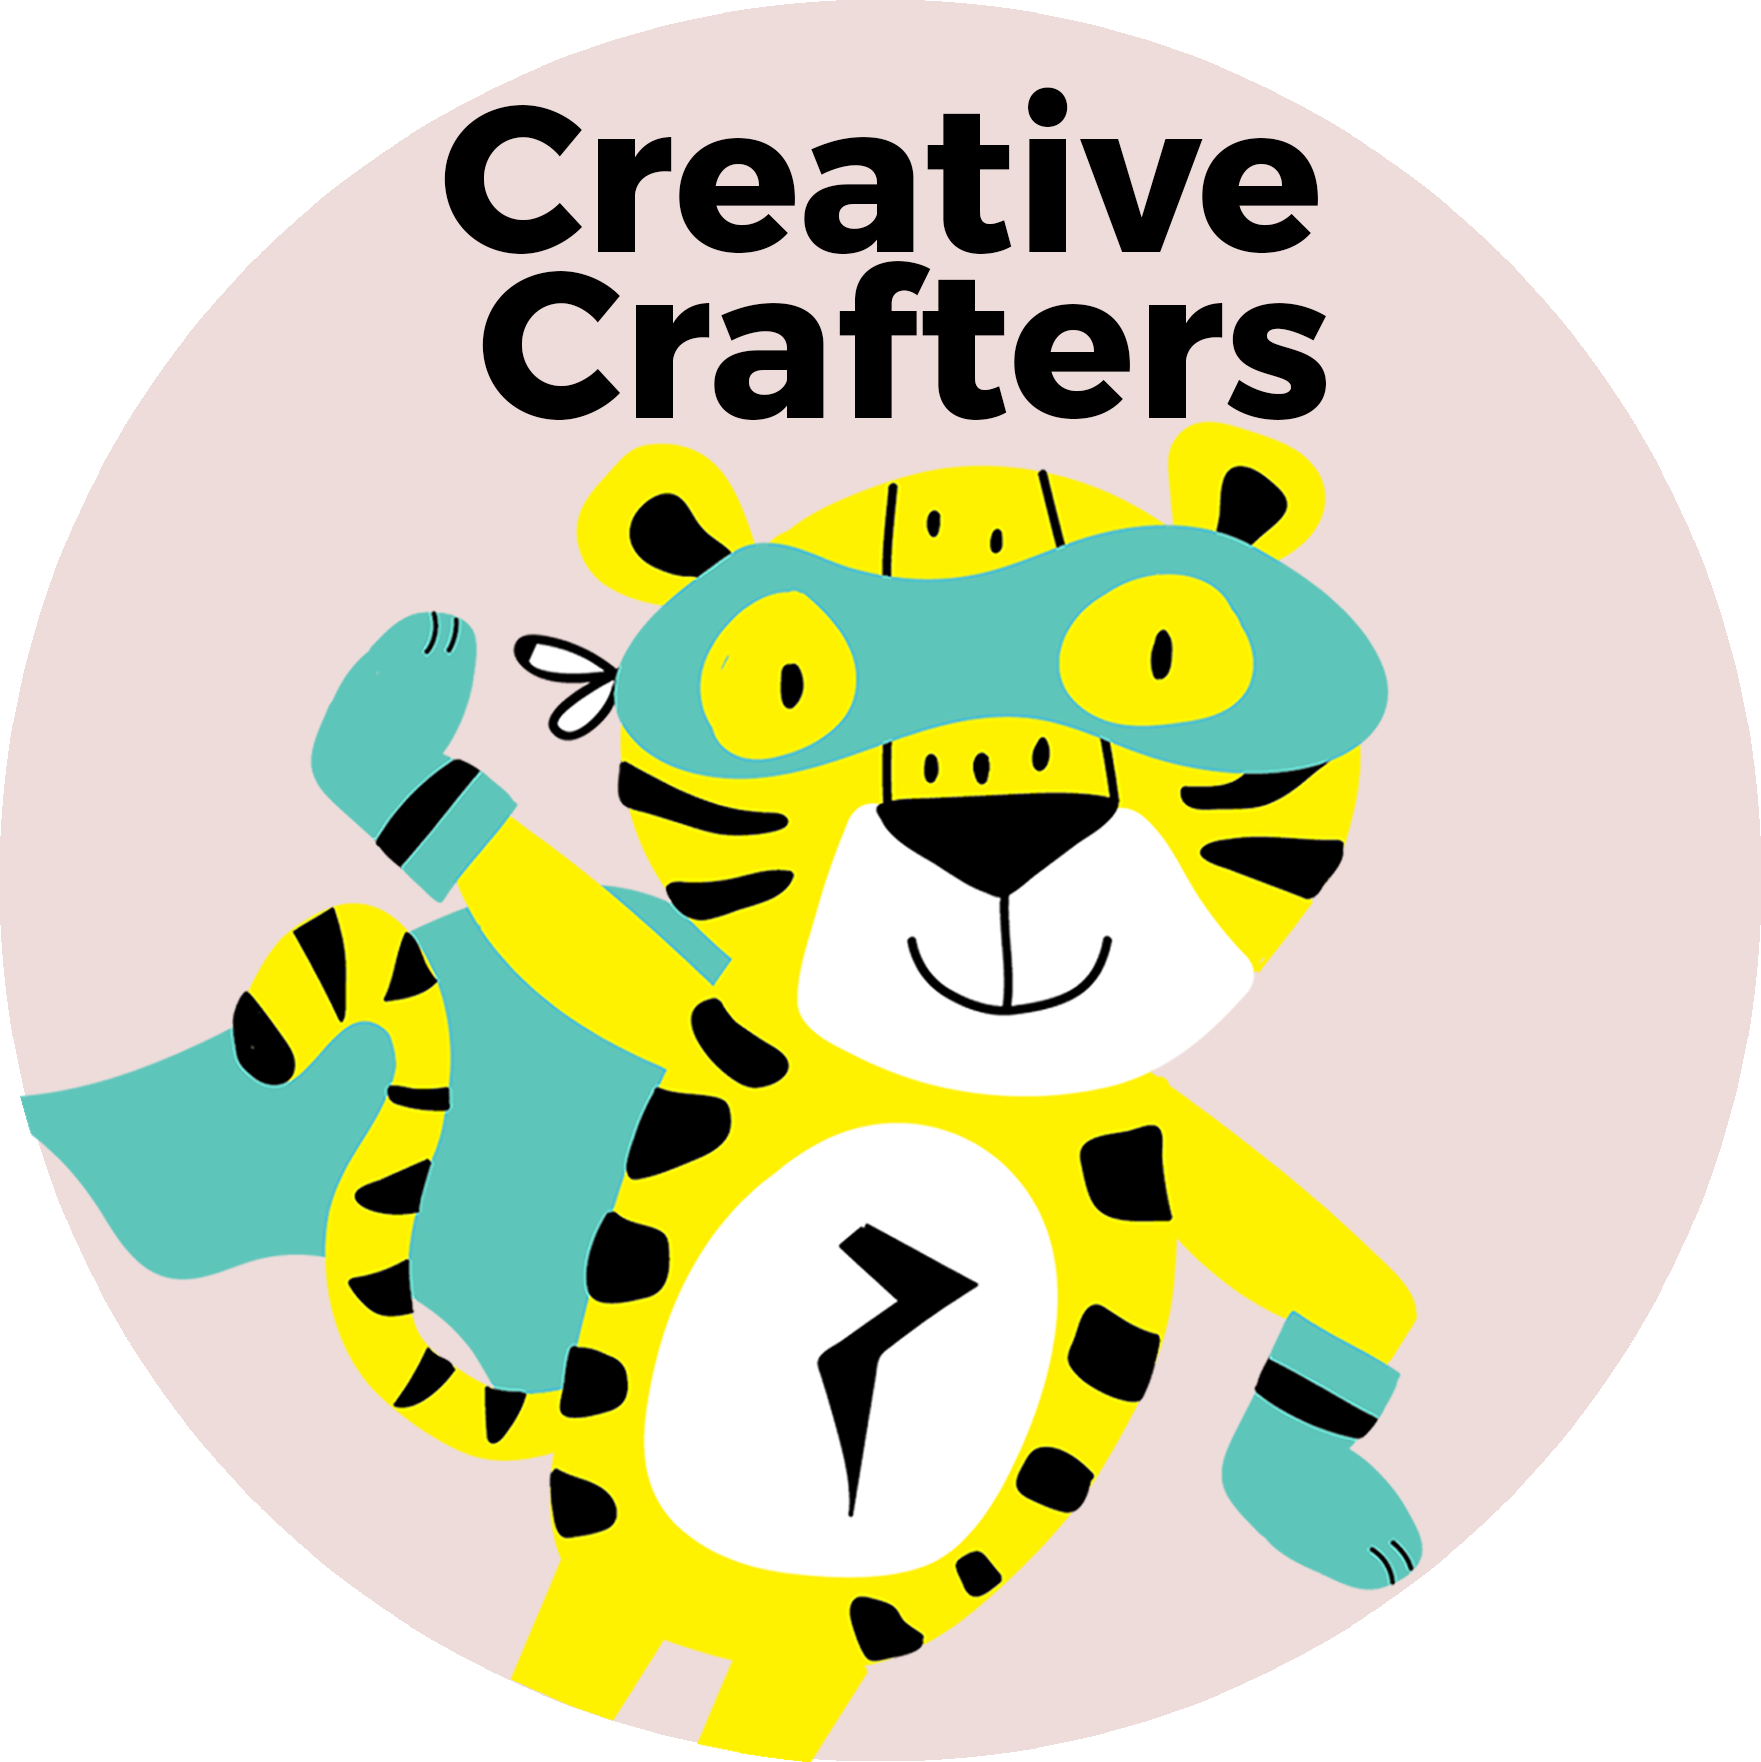 Creative Crafters (2).png